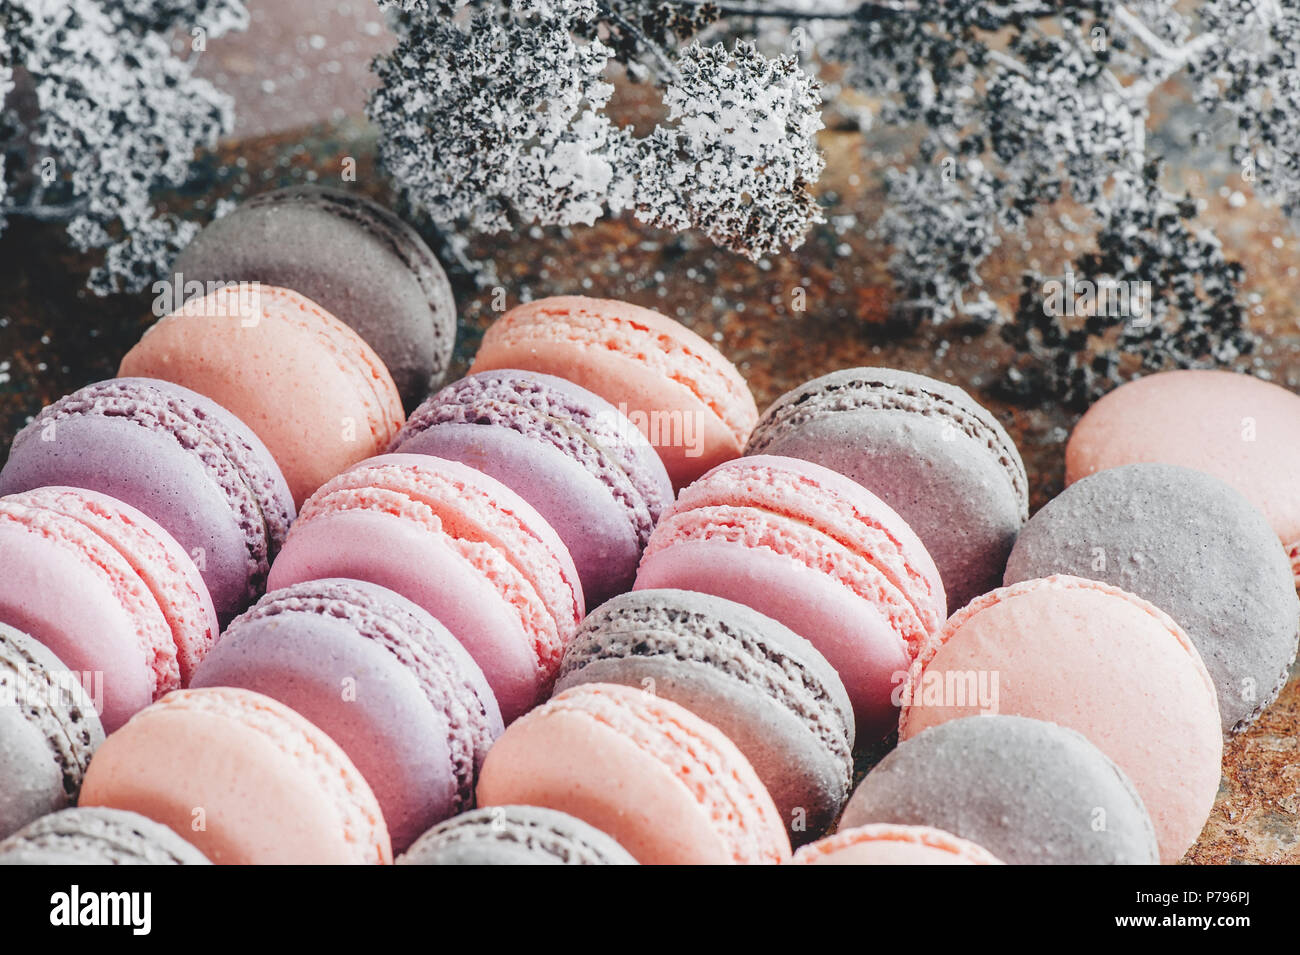 Freshly baked multi-colored macaroons close-up, selective focus. - Stock Image